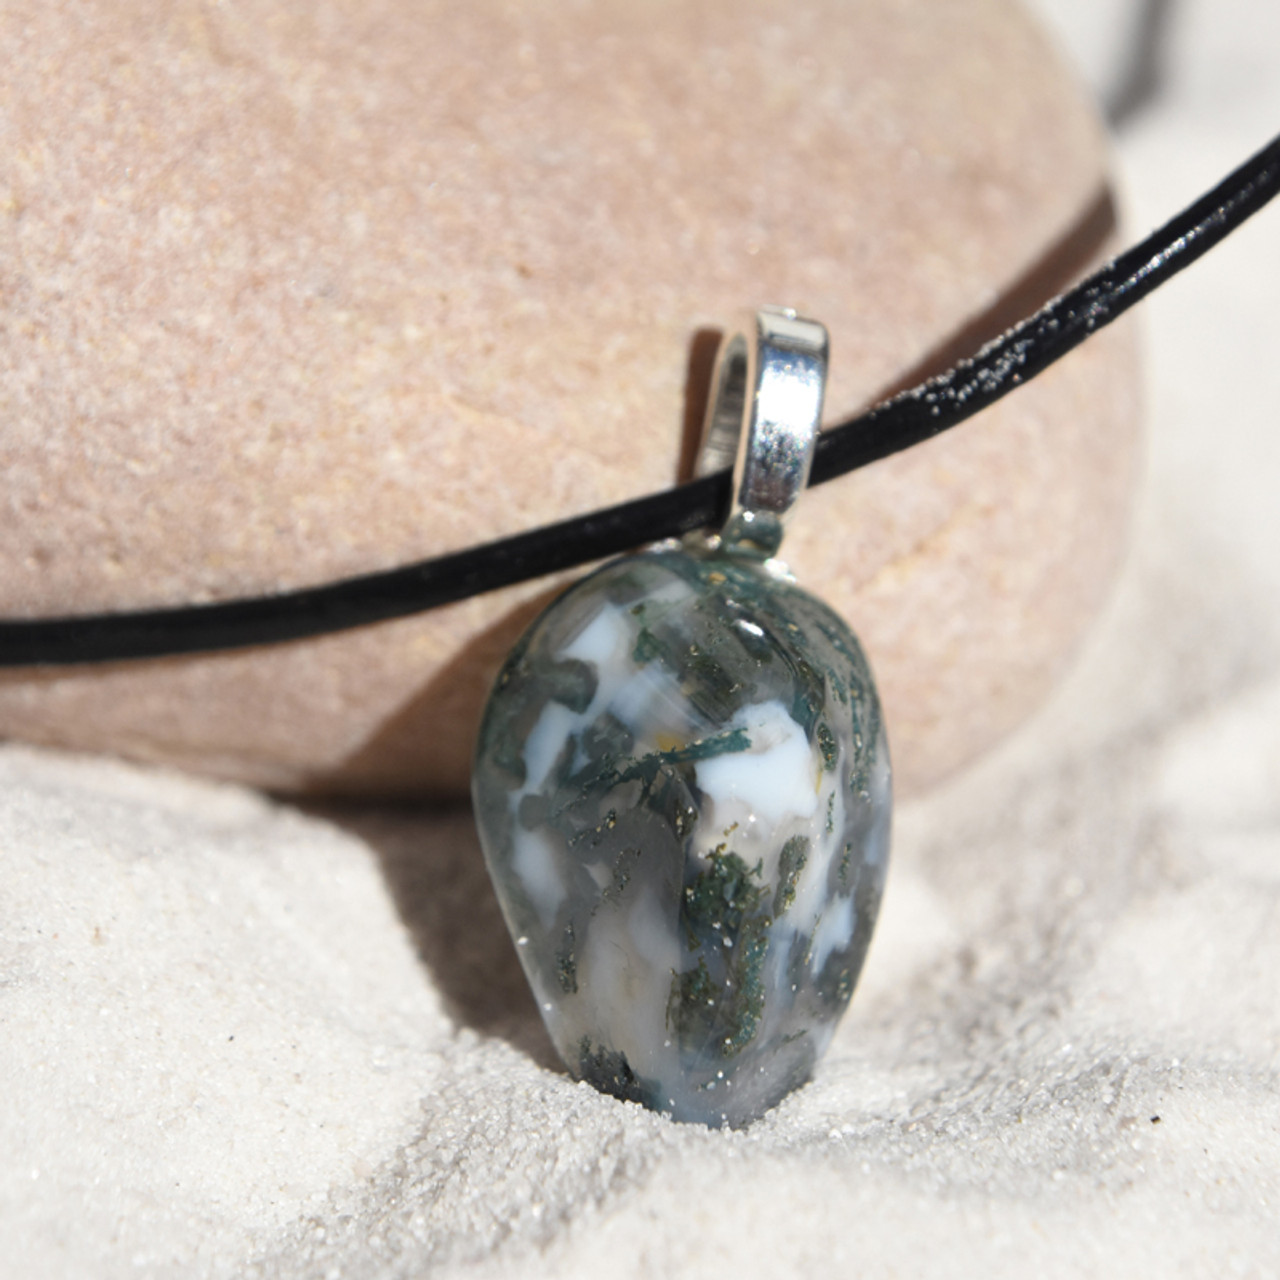 Tumbled Green Moss Agate Pendant and Necklace - Choose Sterling Silver Chain or Leather Cord - Quantity of 1 - Made to Order